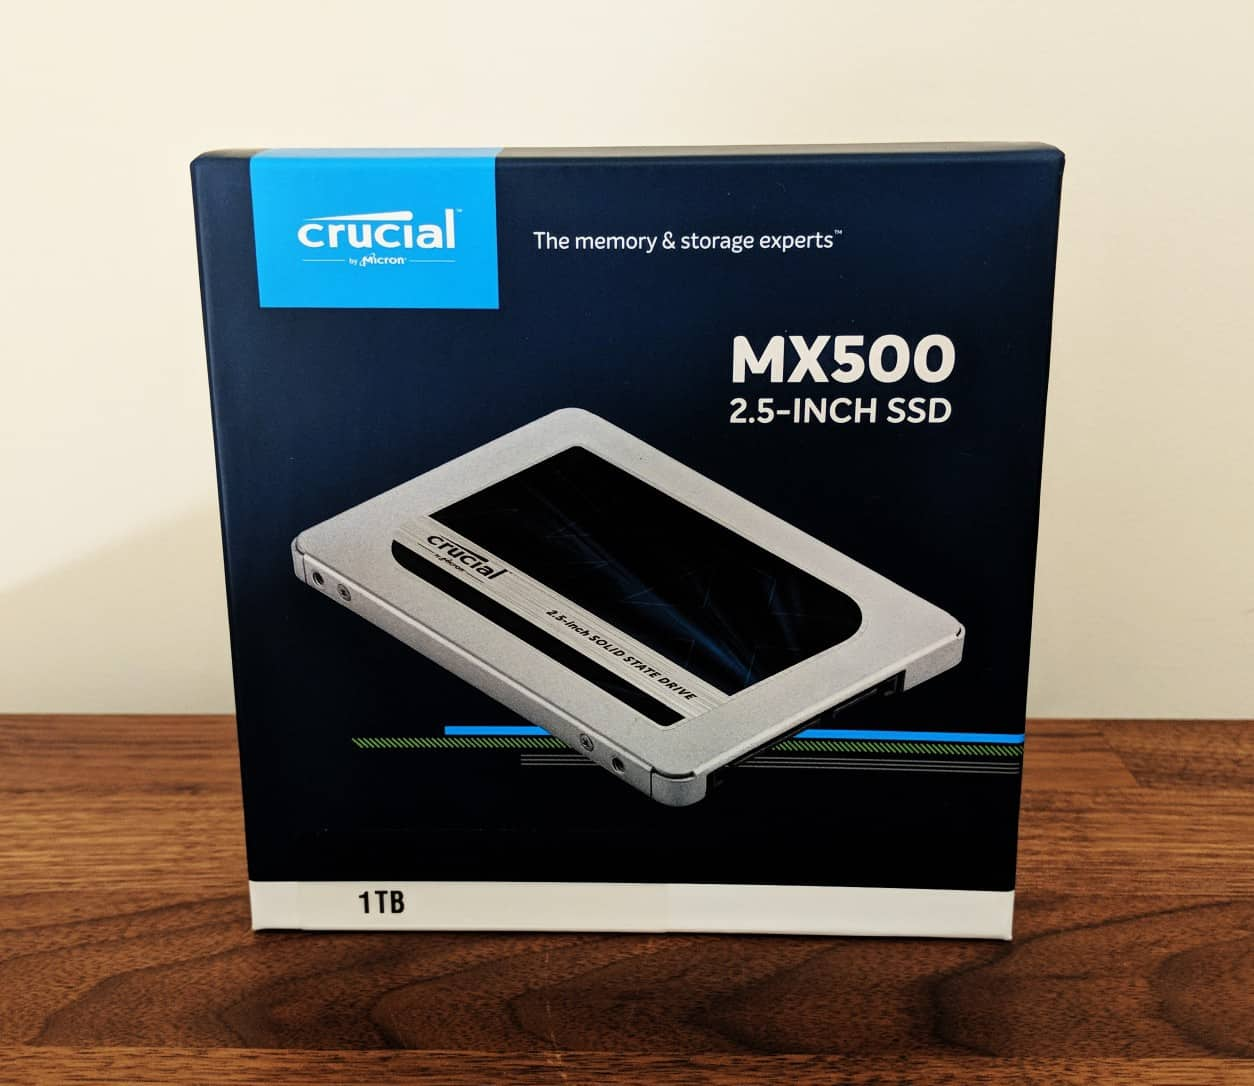 Crucial-MX500-1TB-Photos13 Crucial MX500 1TB SSD Review